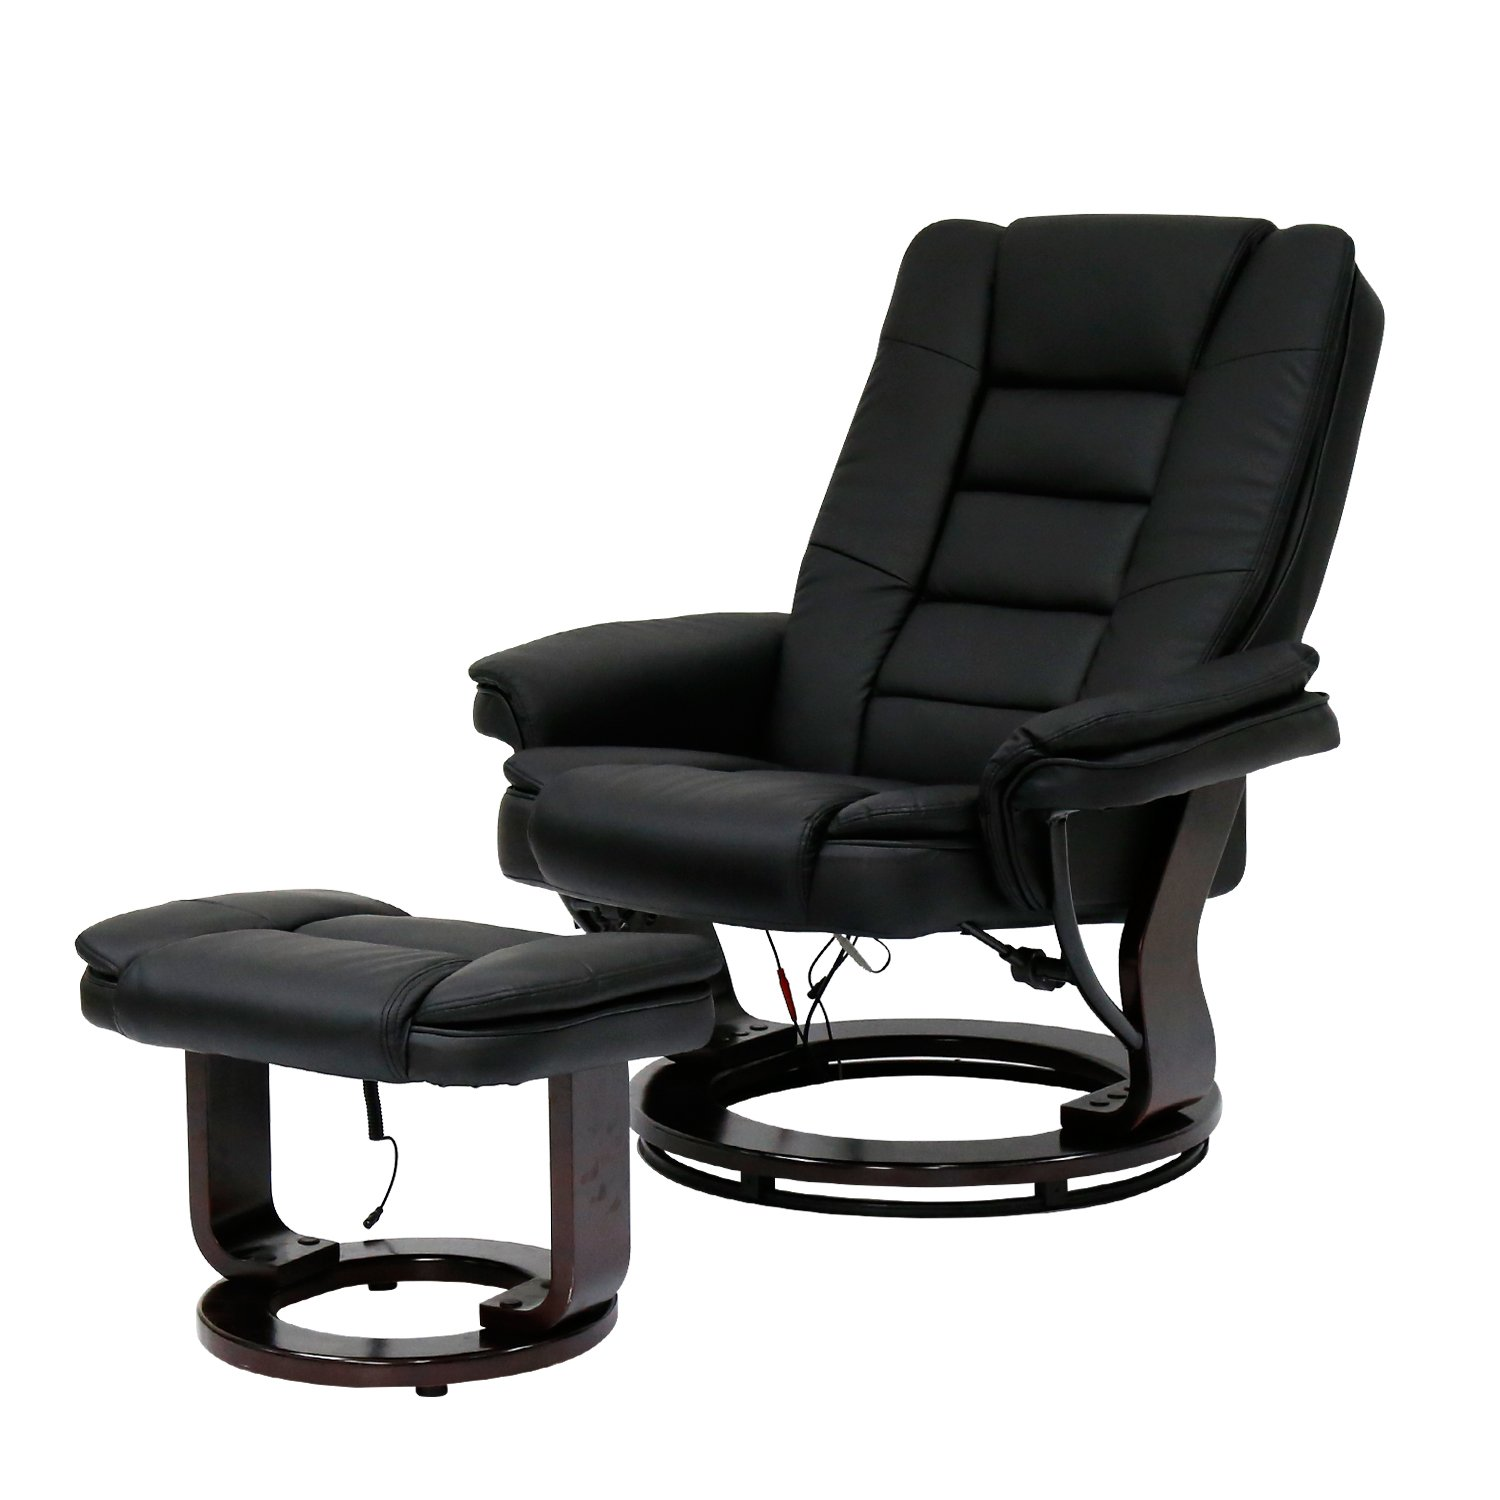 Kinbor PU Leather Massage Chair Recliner Ottoman w/ Control, 8 Heat & Massage Modes (black)